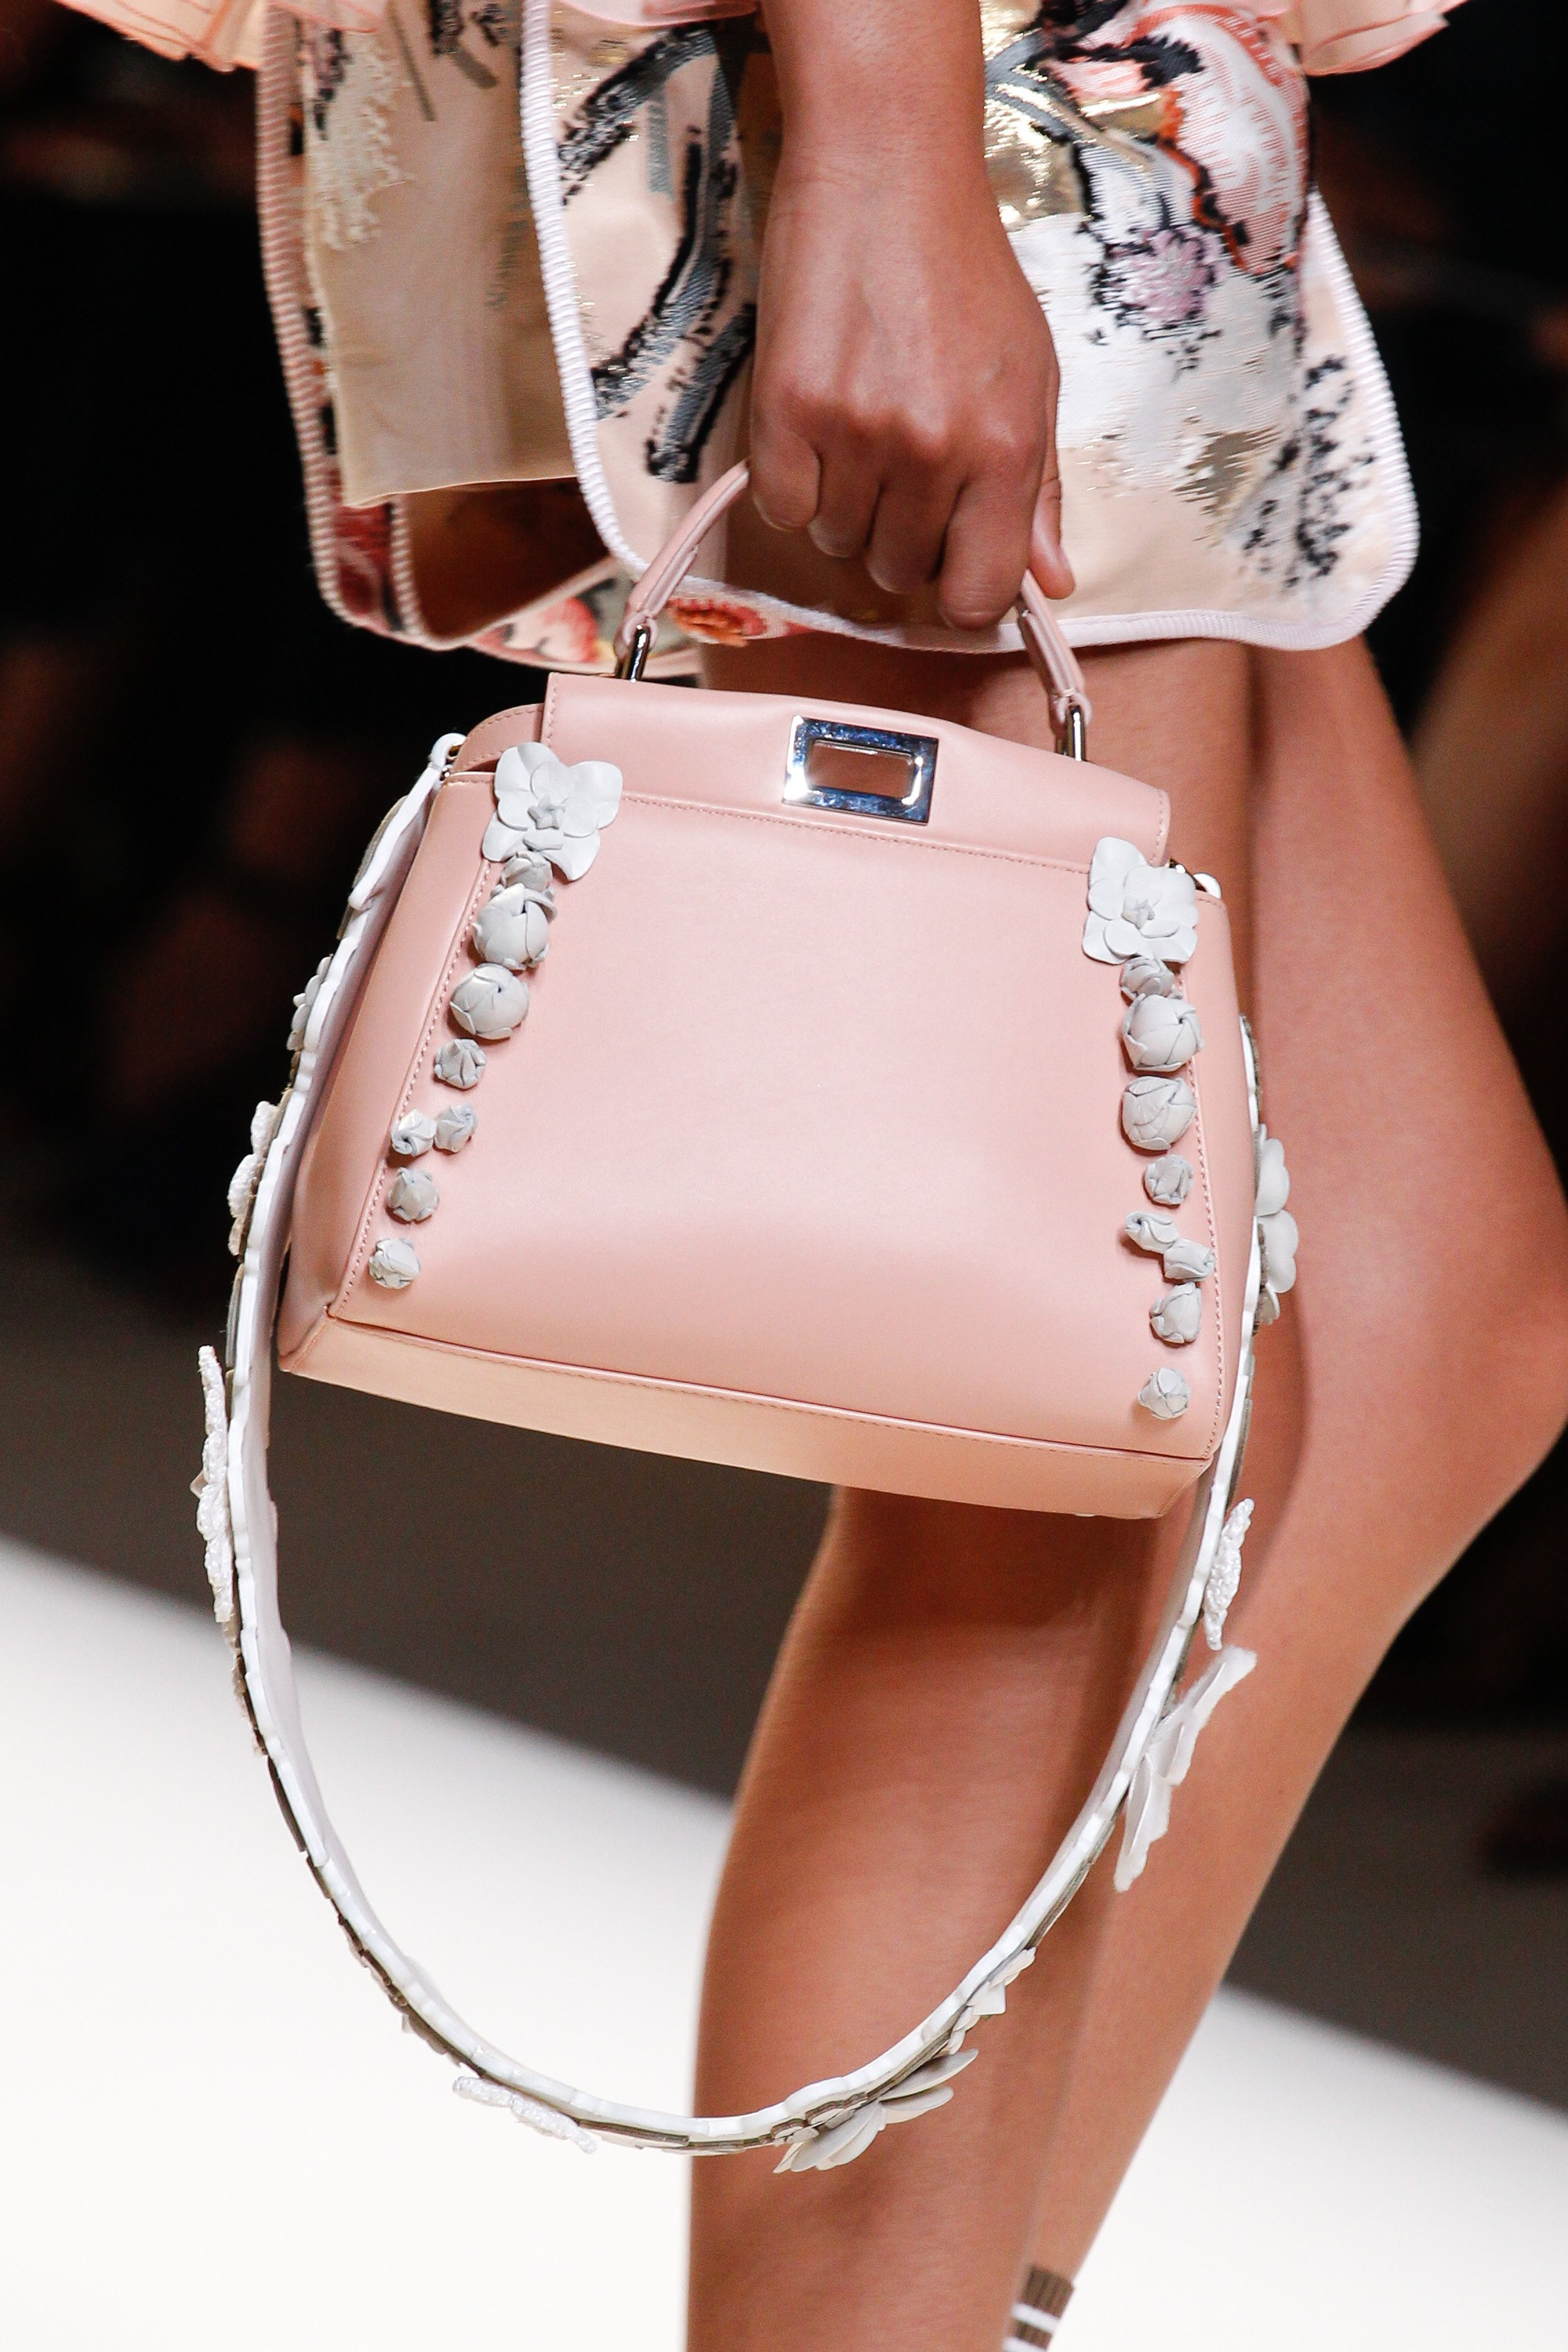 fendi-pink-mini-peekaboo-bag-spring-2017